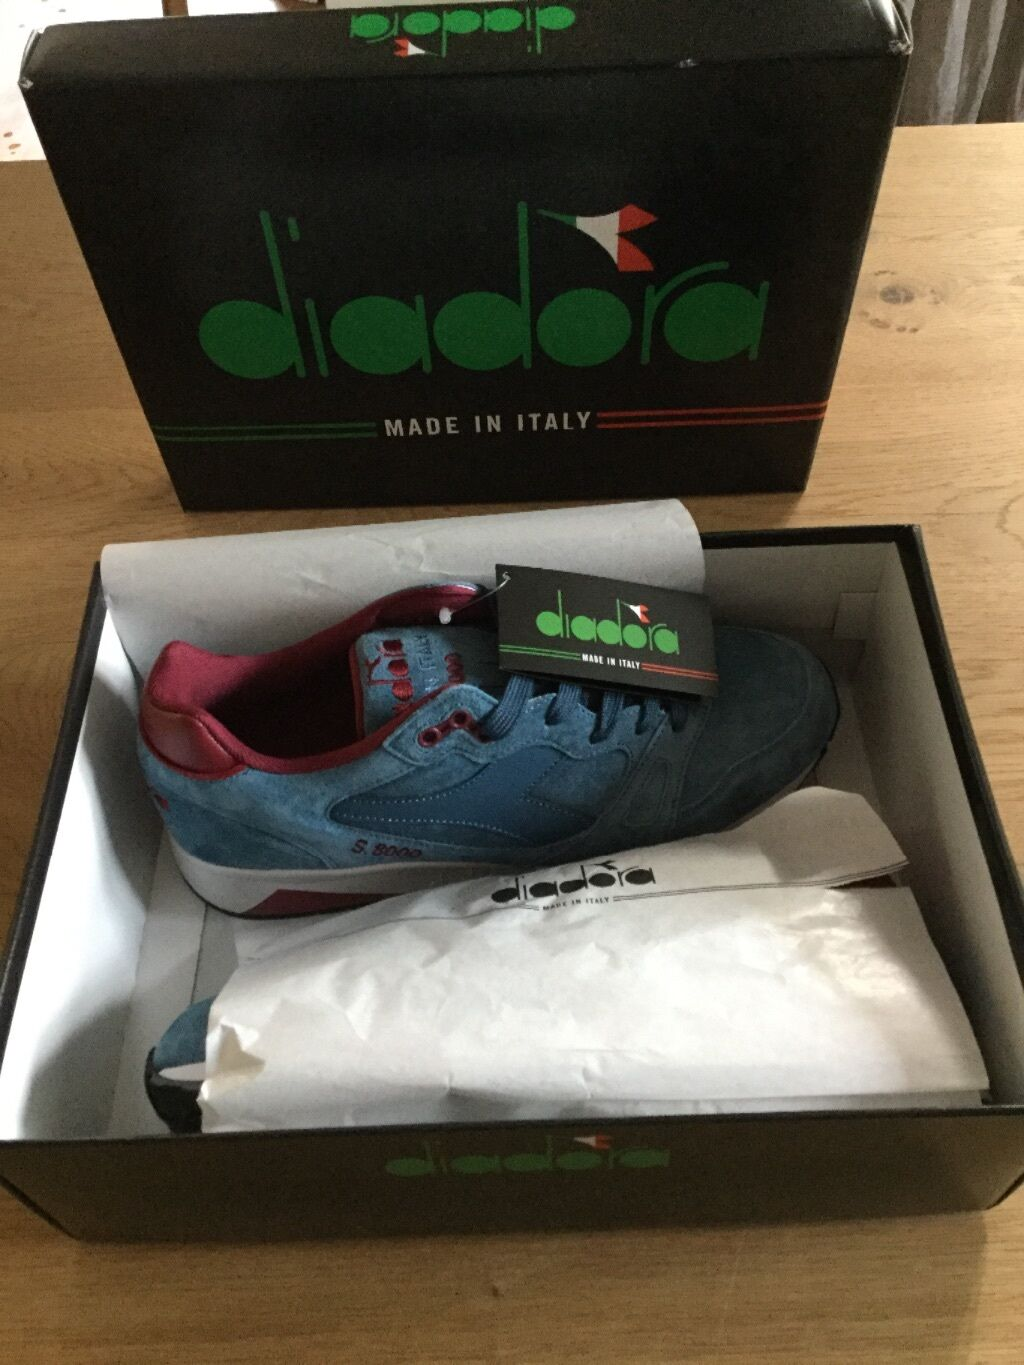 Diadora s8000 Italia-Made in